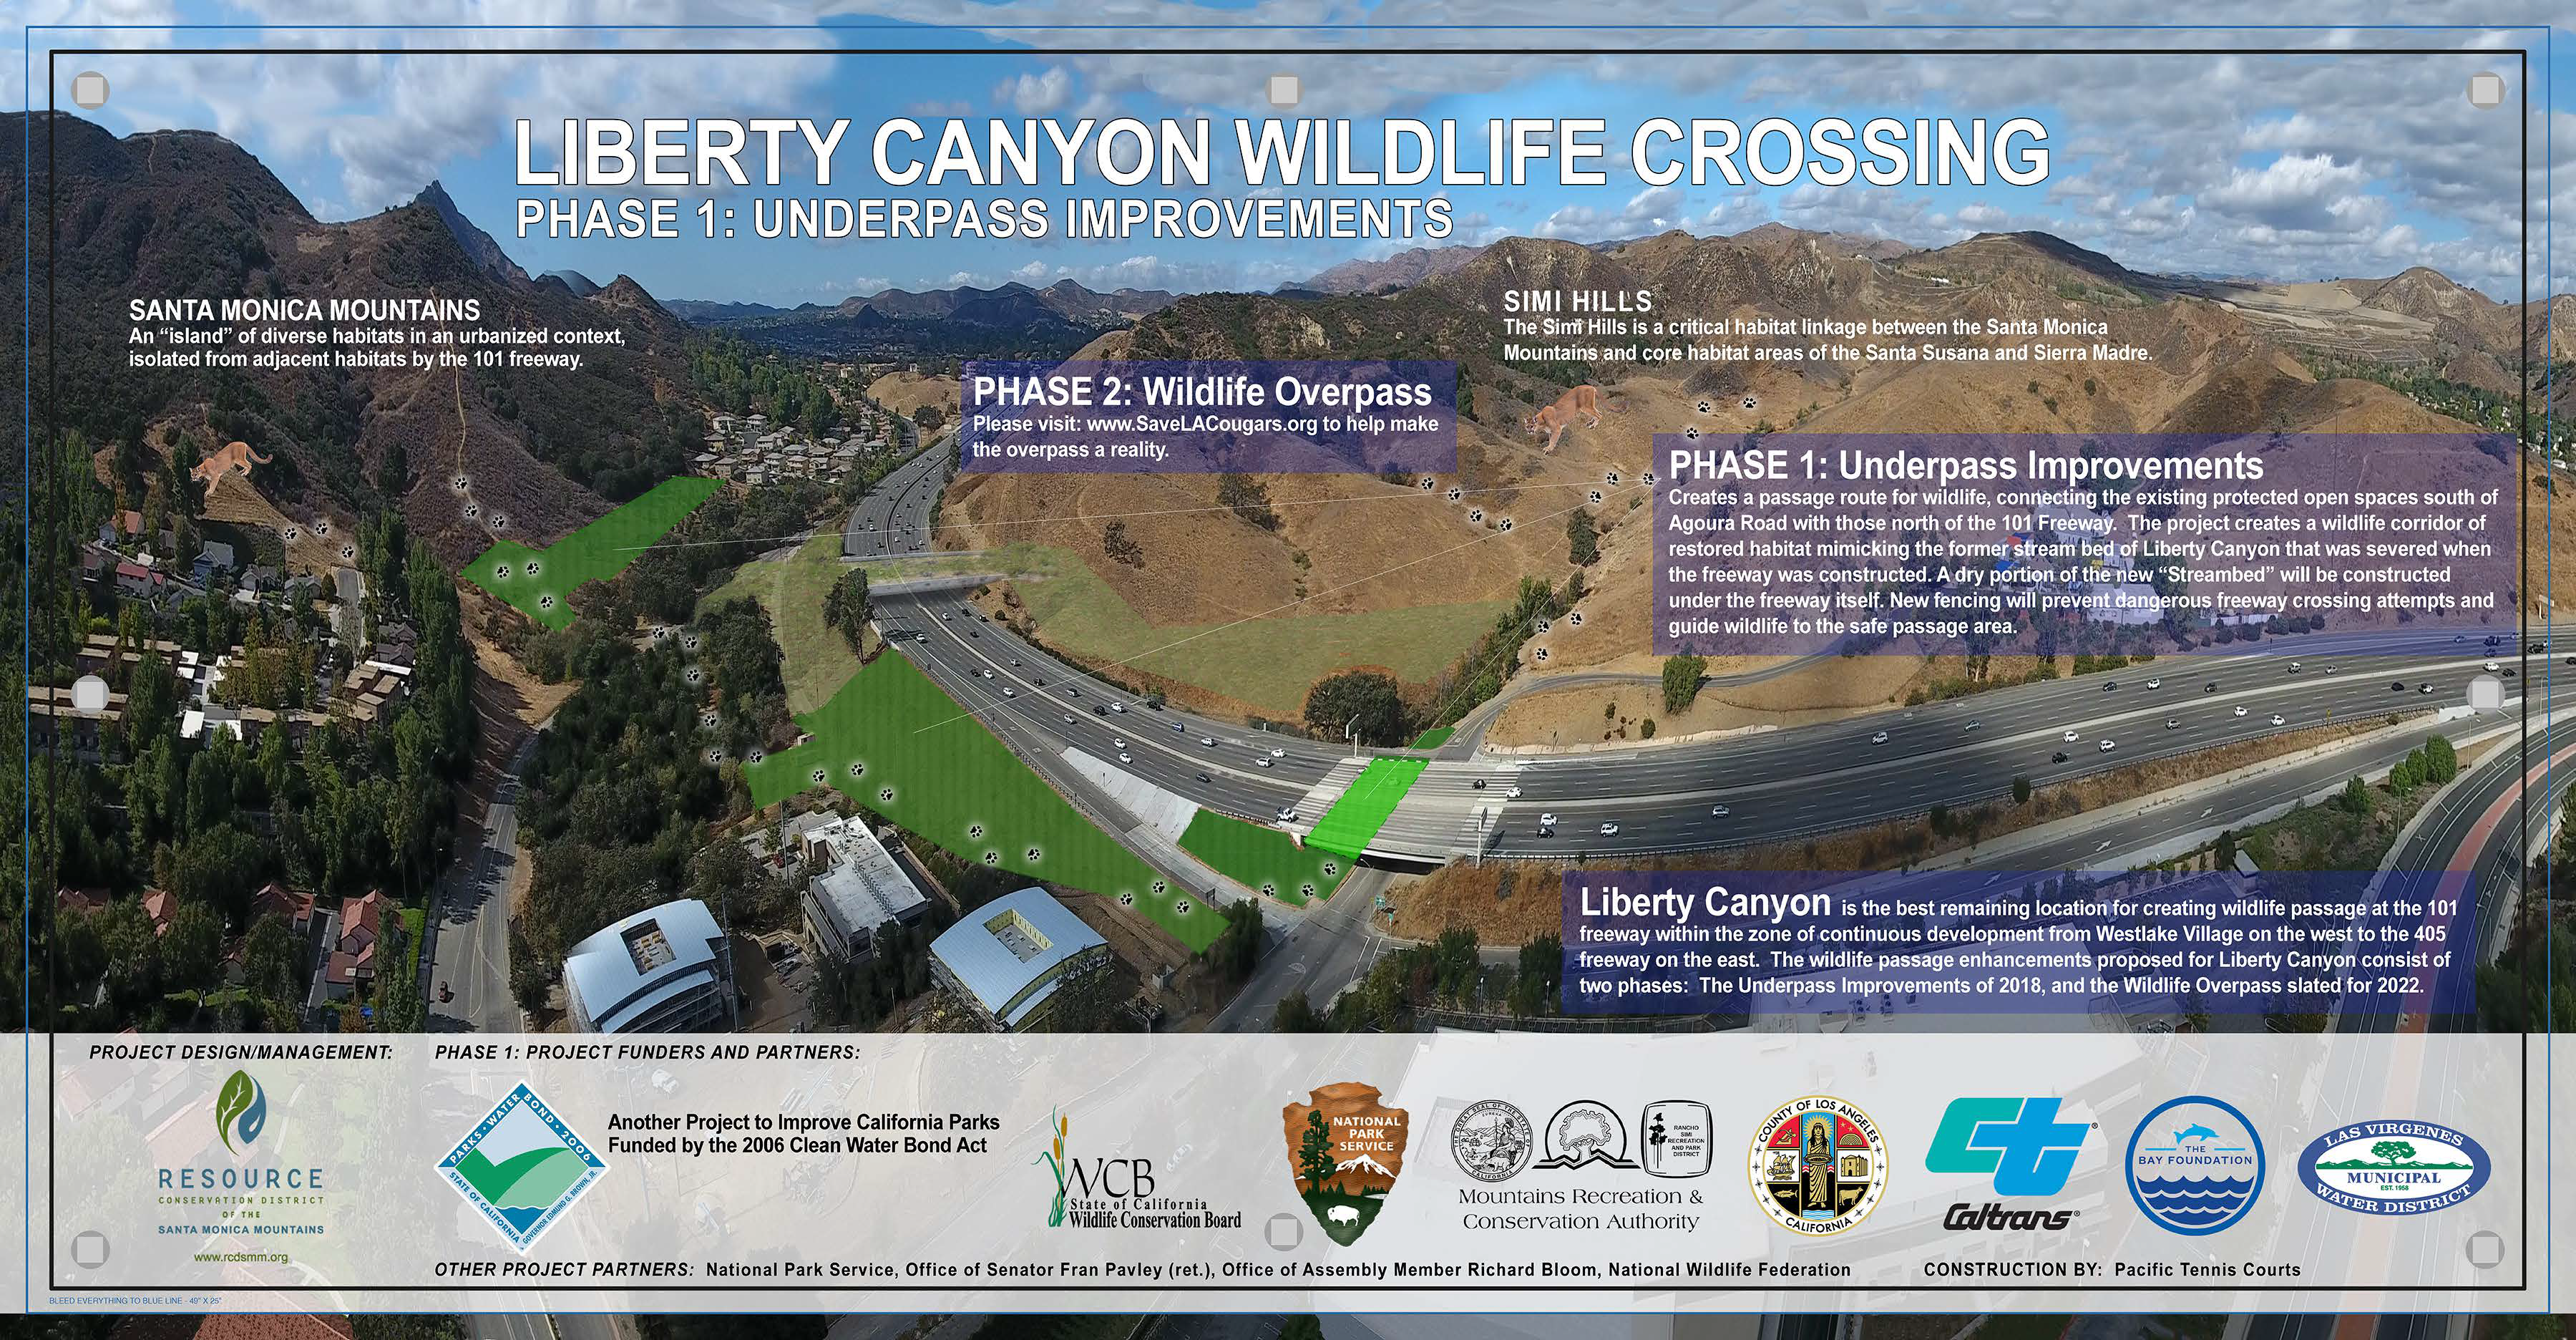 Wildlife Crossing at Liberty Canyon map and infographic